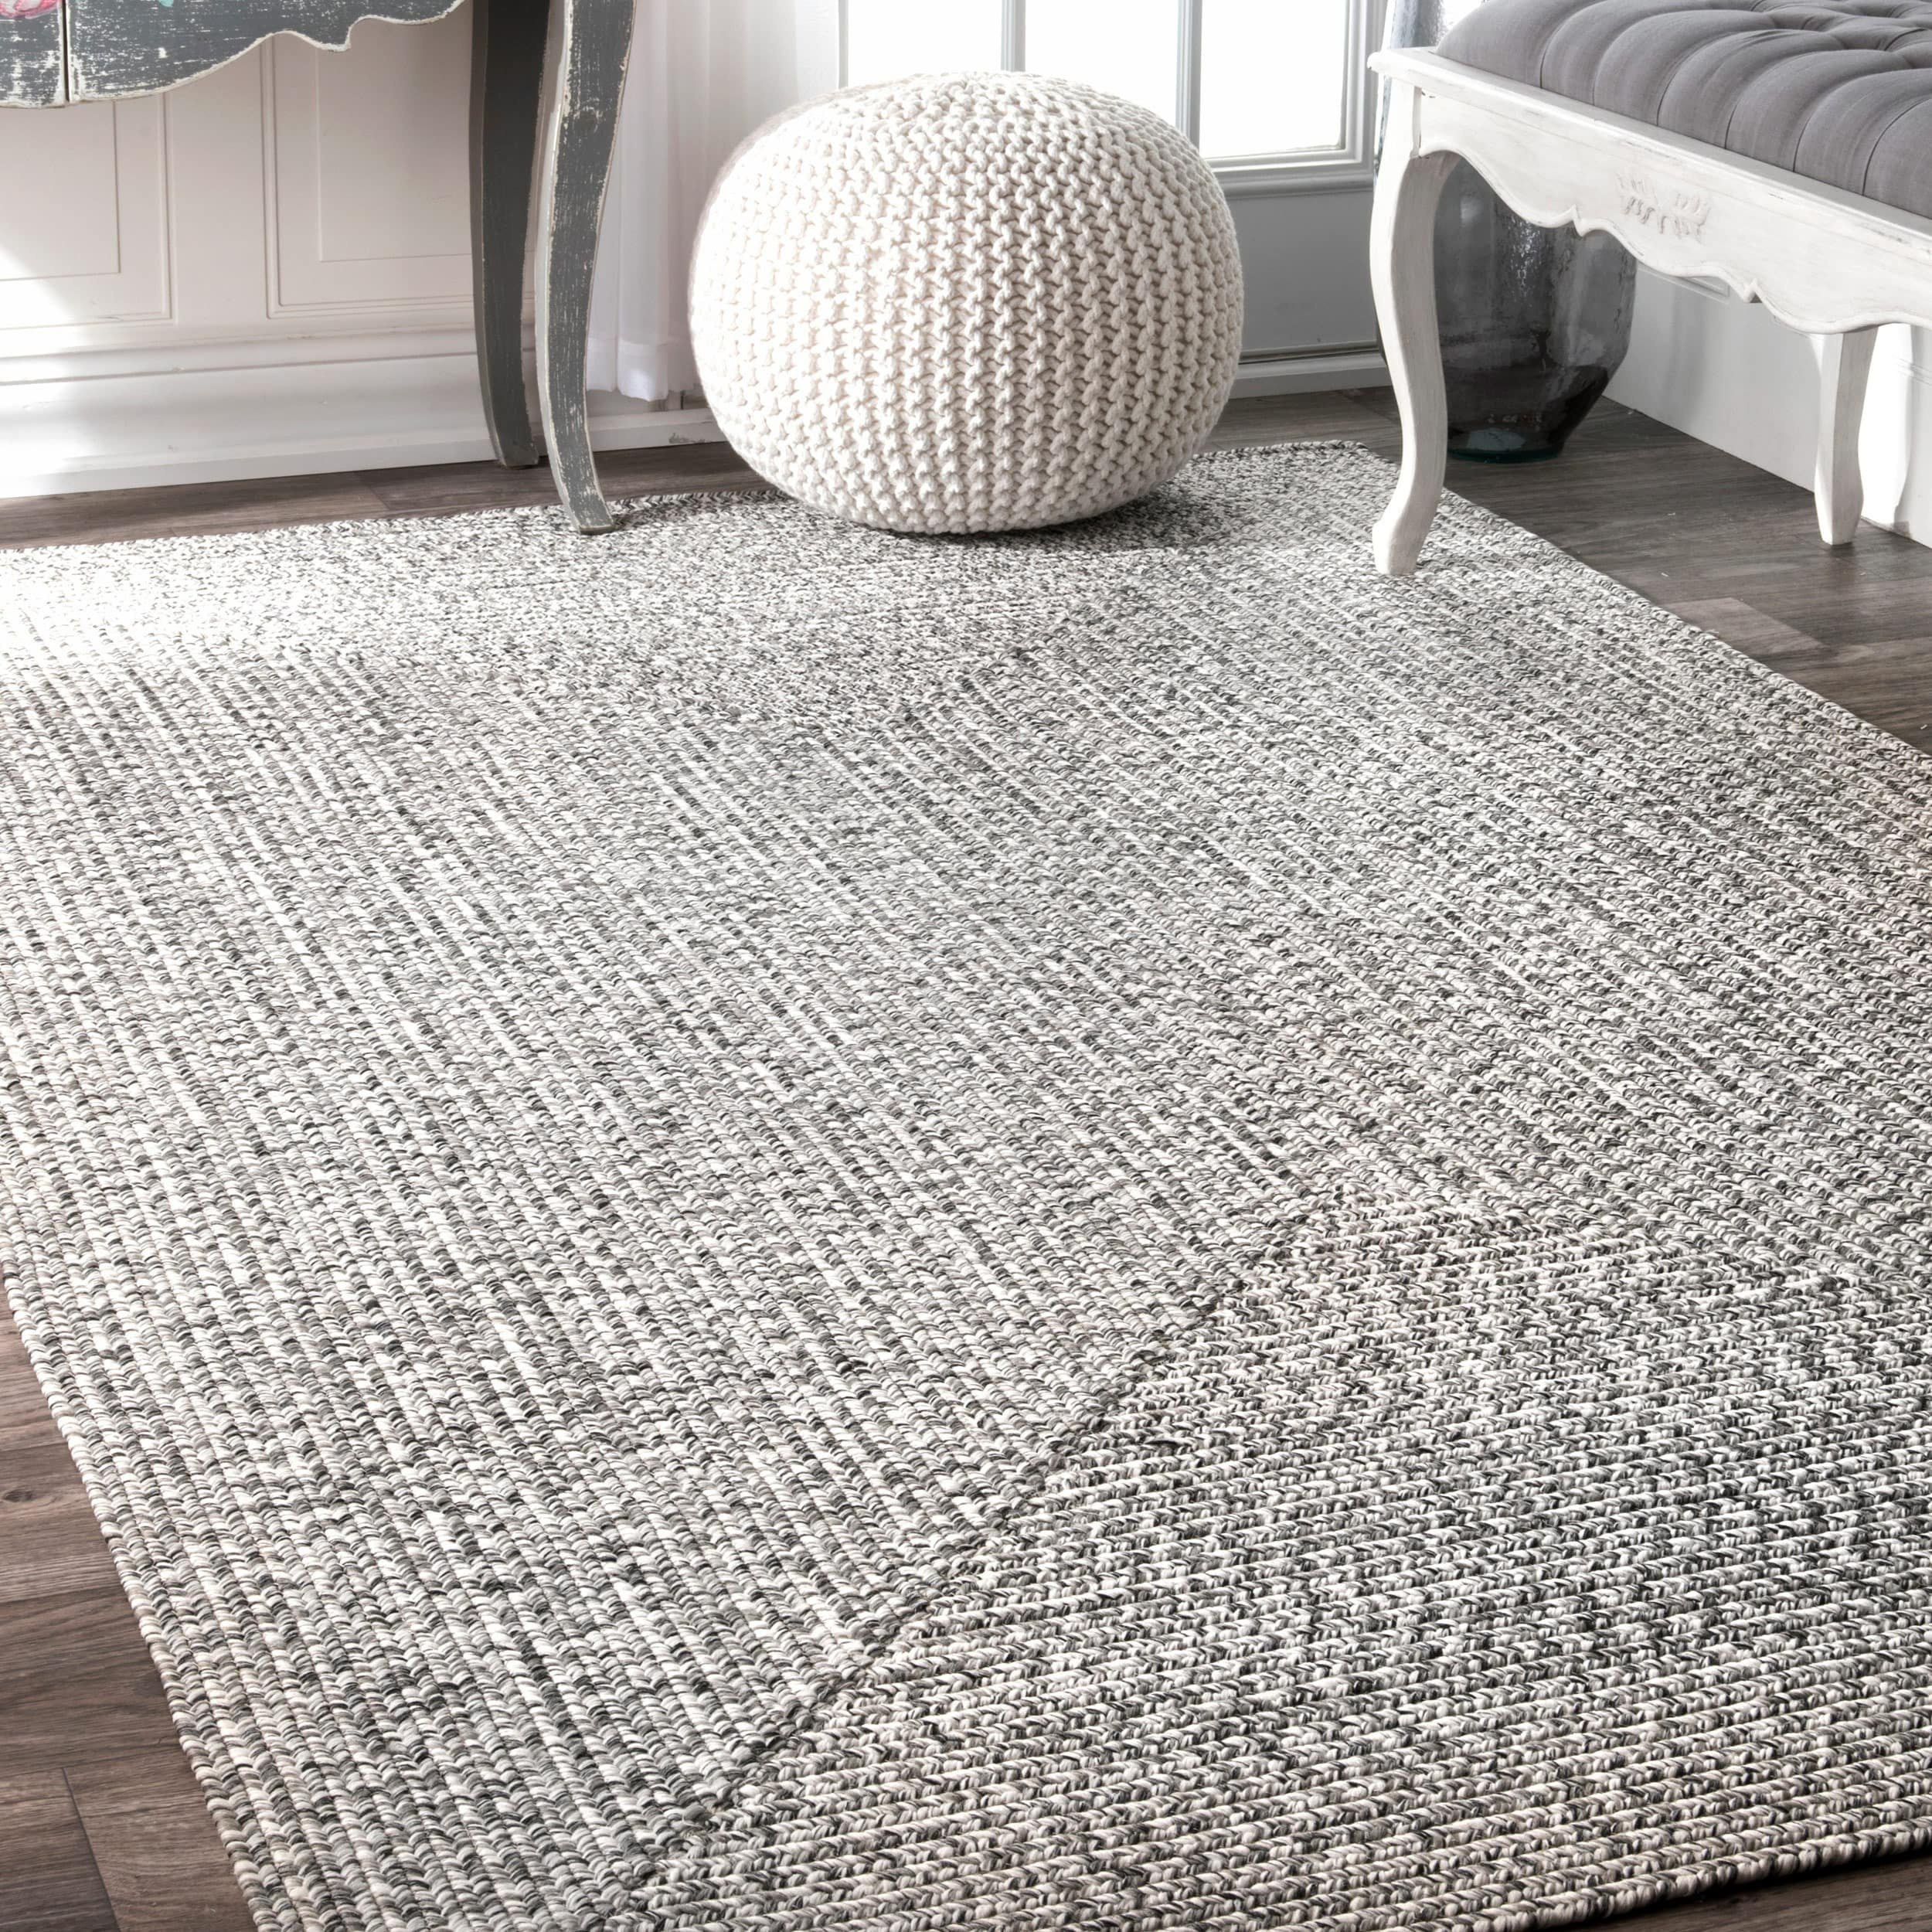 Strick & Bolton Rowan Handmade Braided Area Rug (2 6 x 10 Runner - Salt/Pepper)